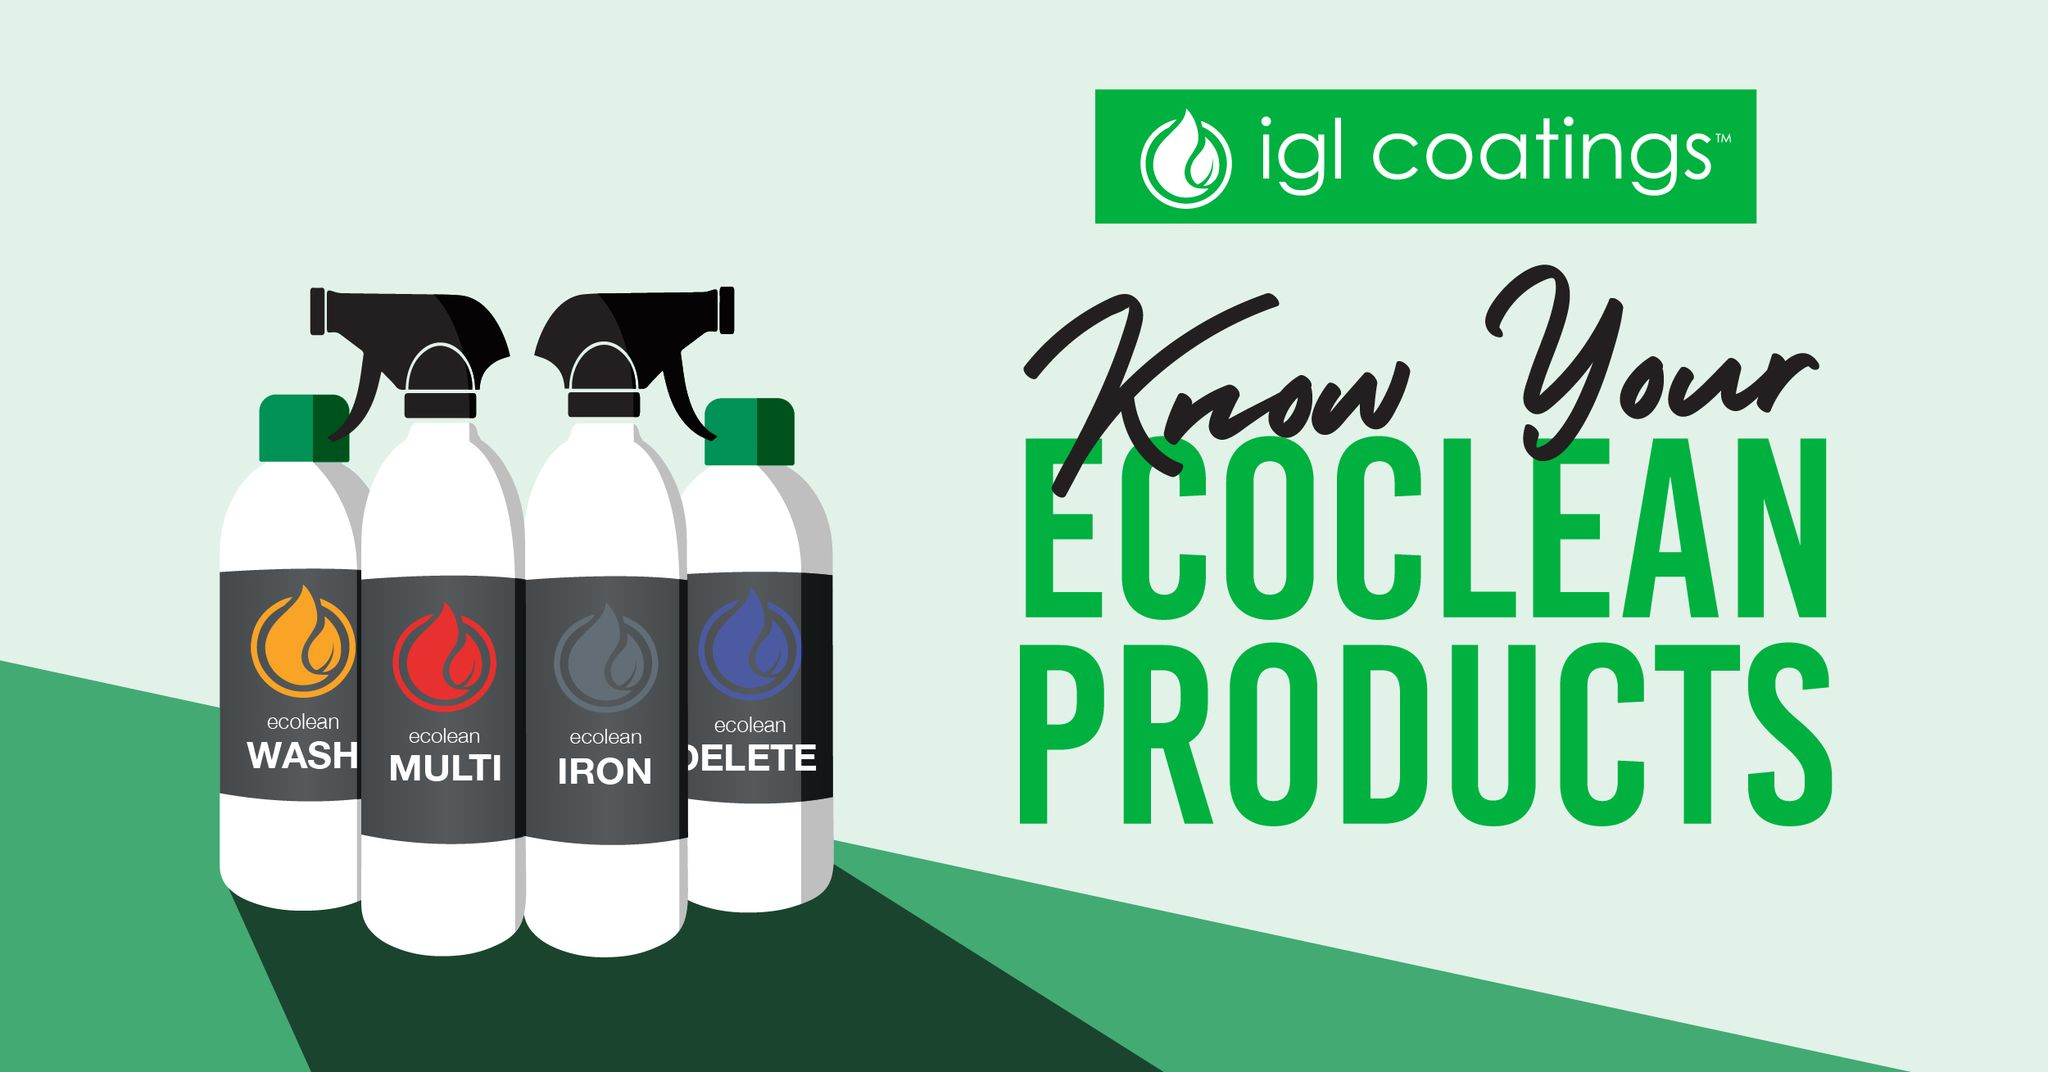 All The What's and Why's For The Ecoclean Series